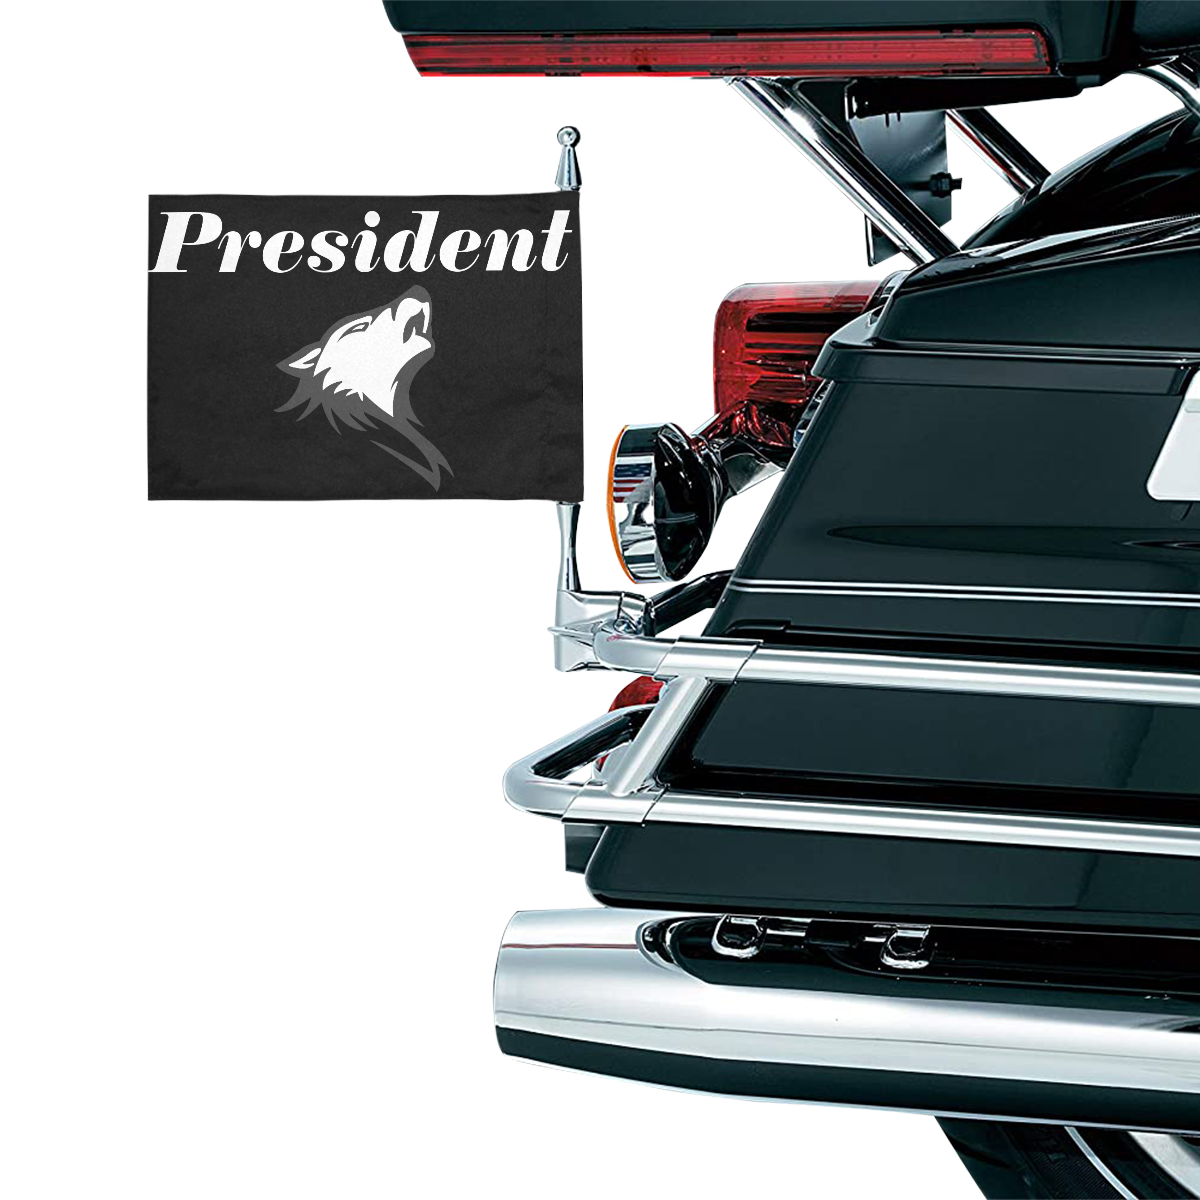 President - SILVER FOX Motorcycle Flag (Twin Sides)